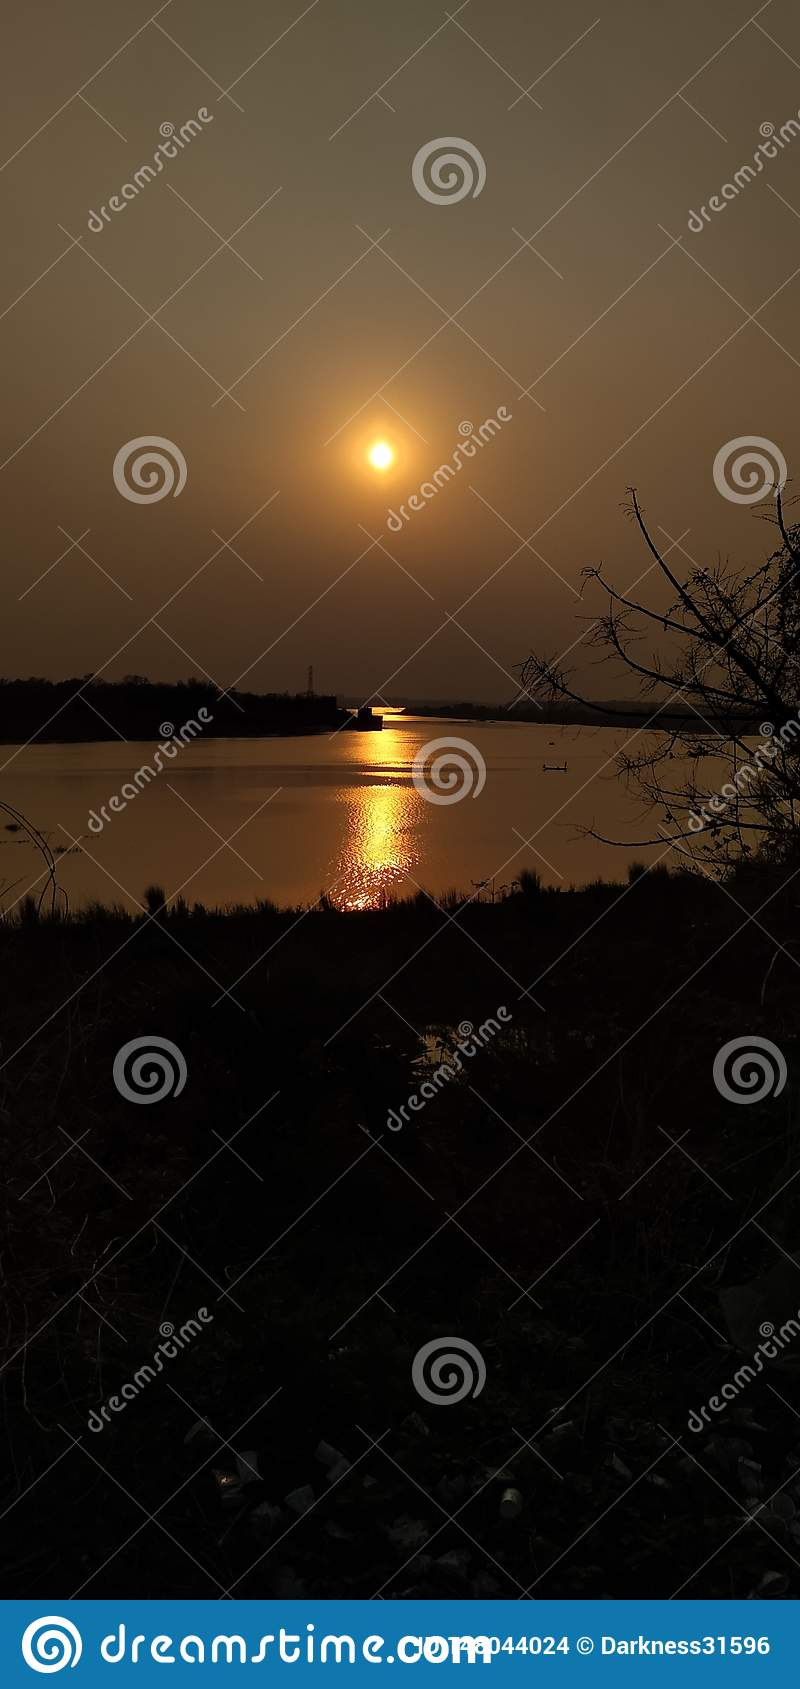 Afternoon, beside the river, sunset, relfect sunrays in water